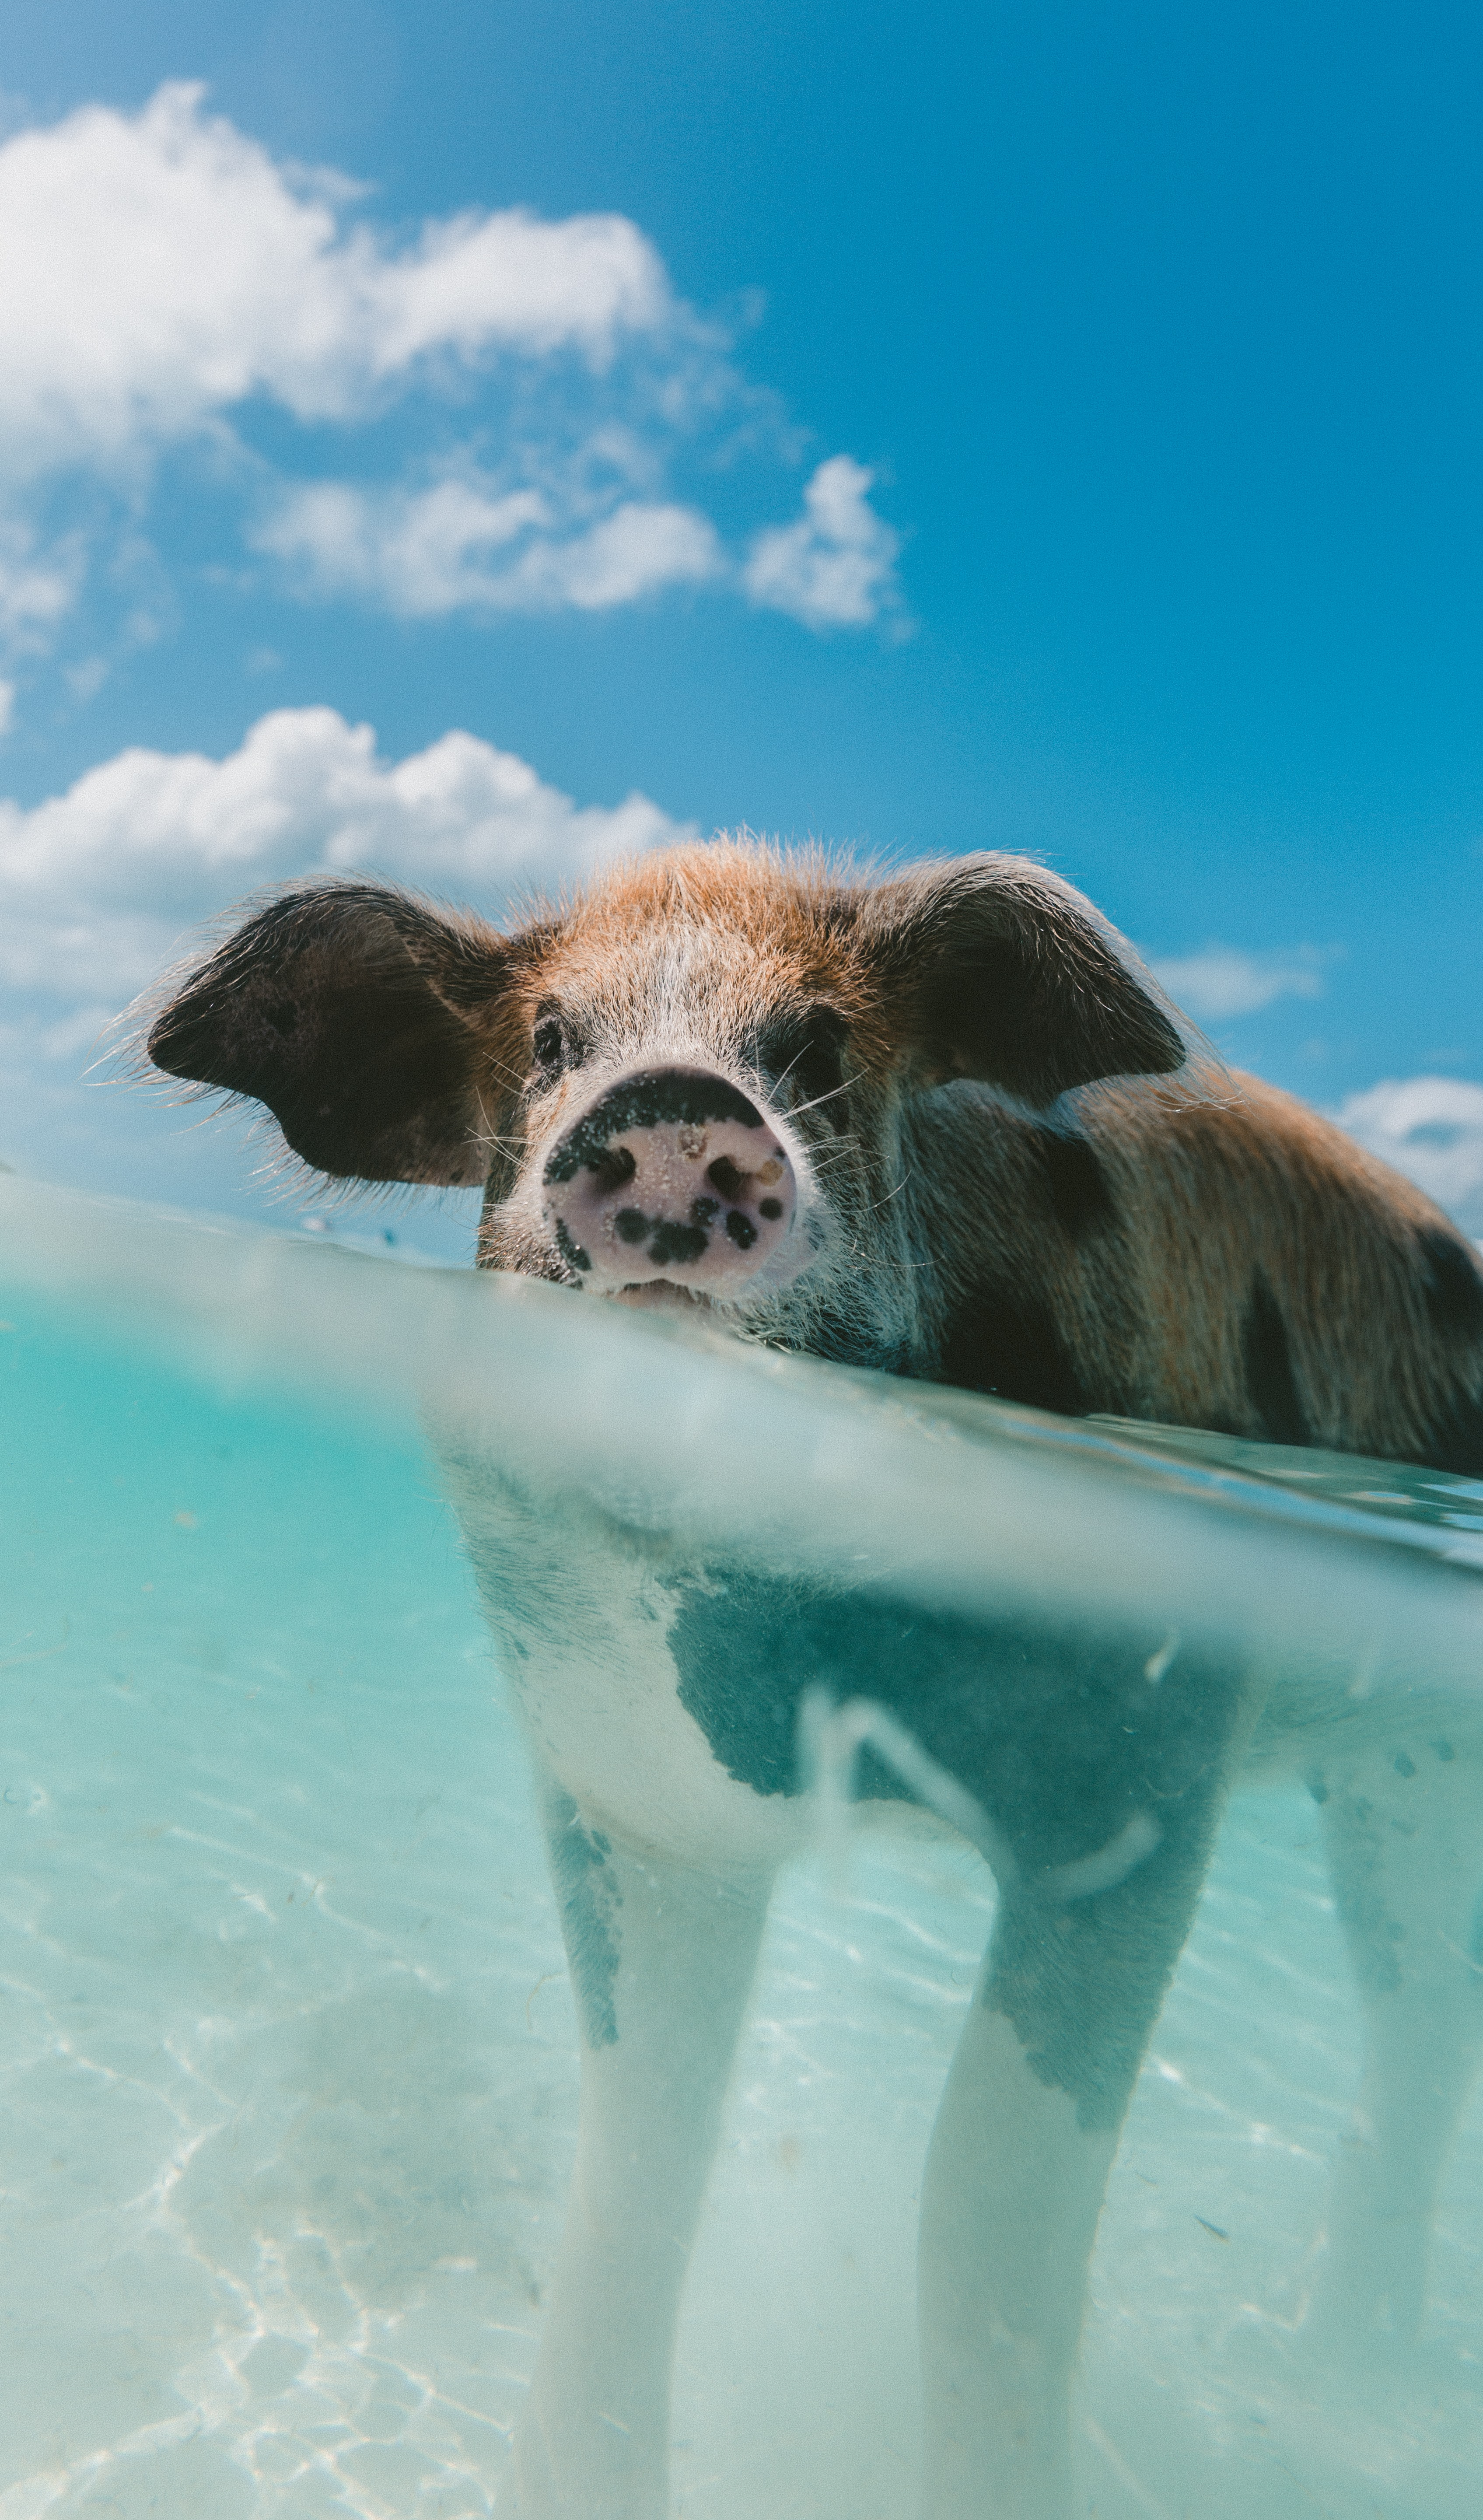 pig walking on body of water during day